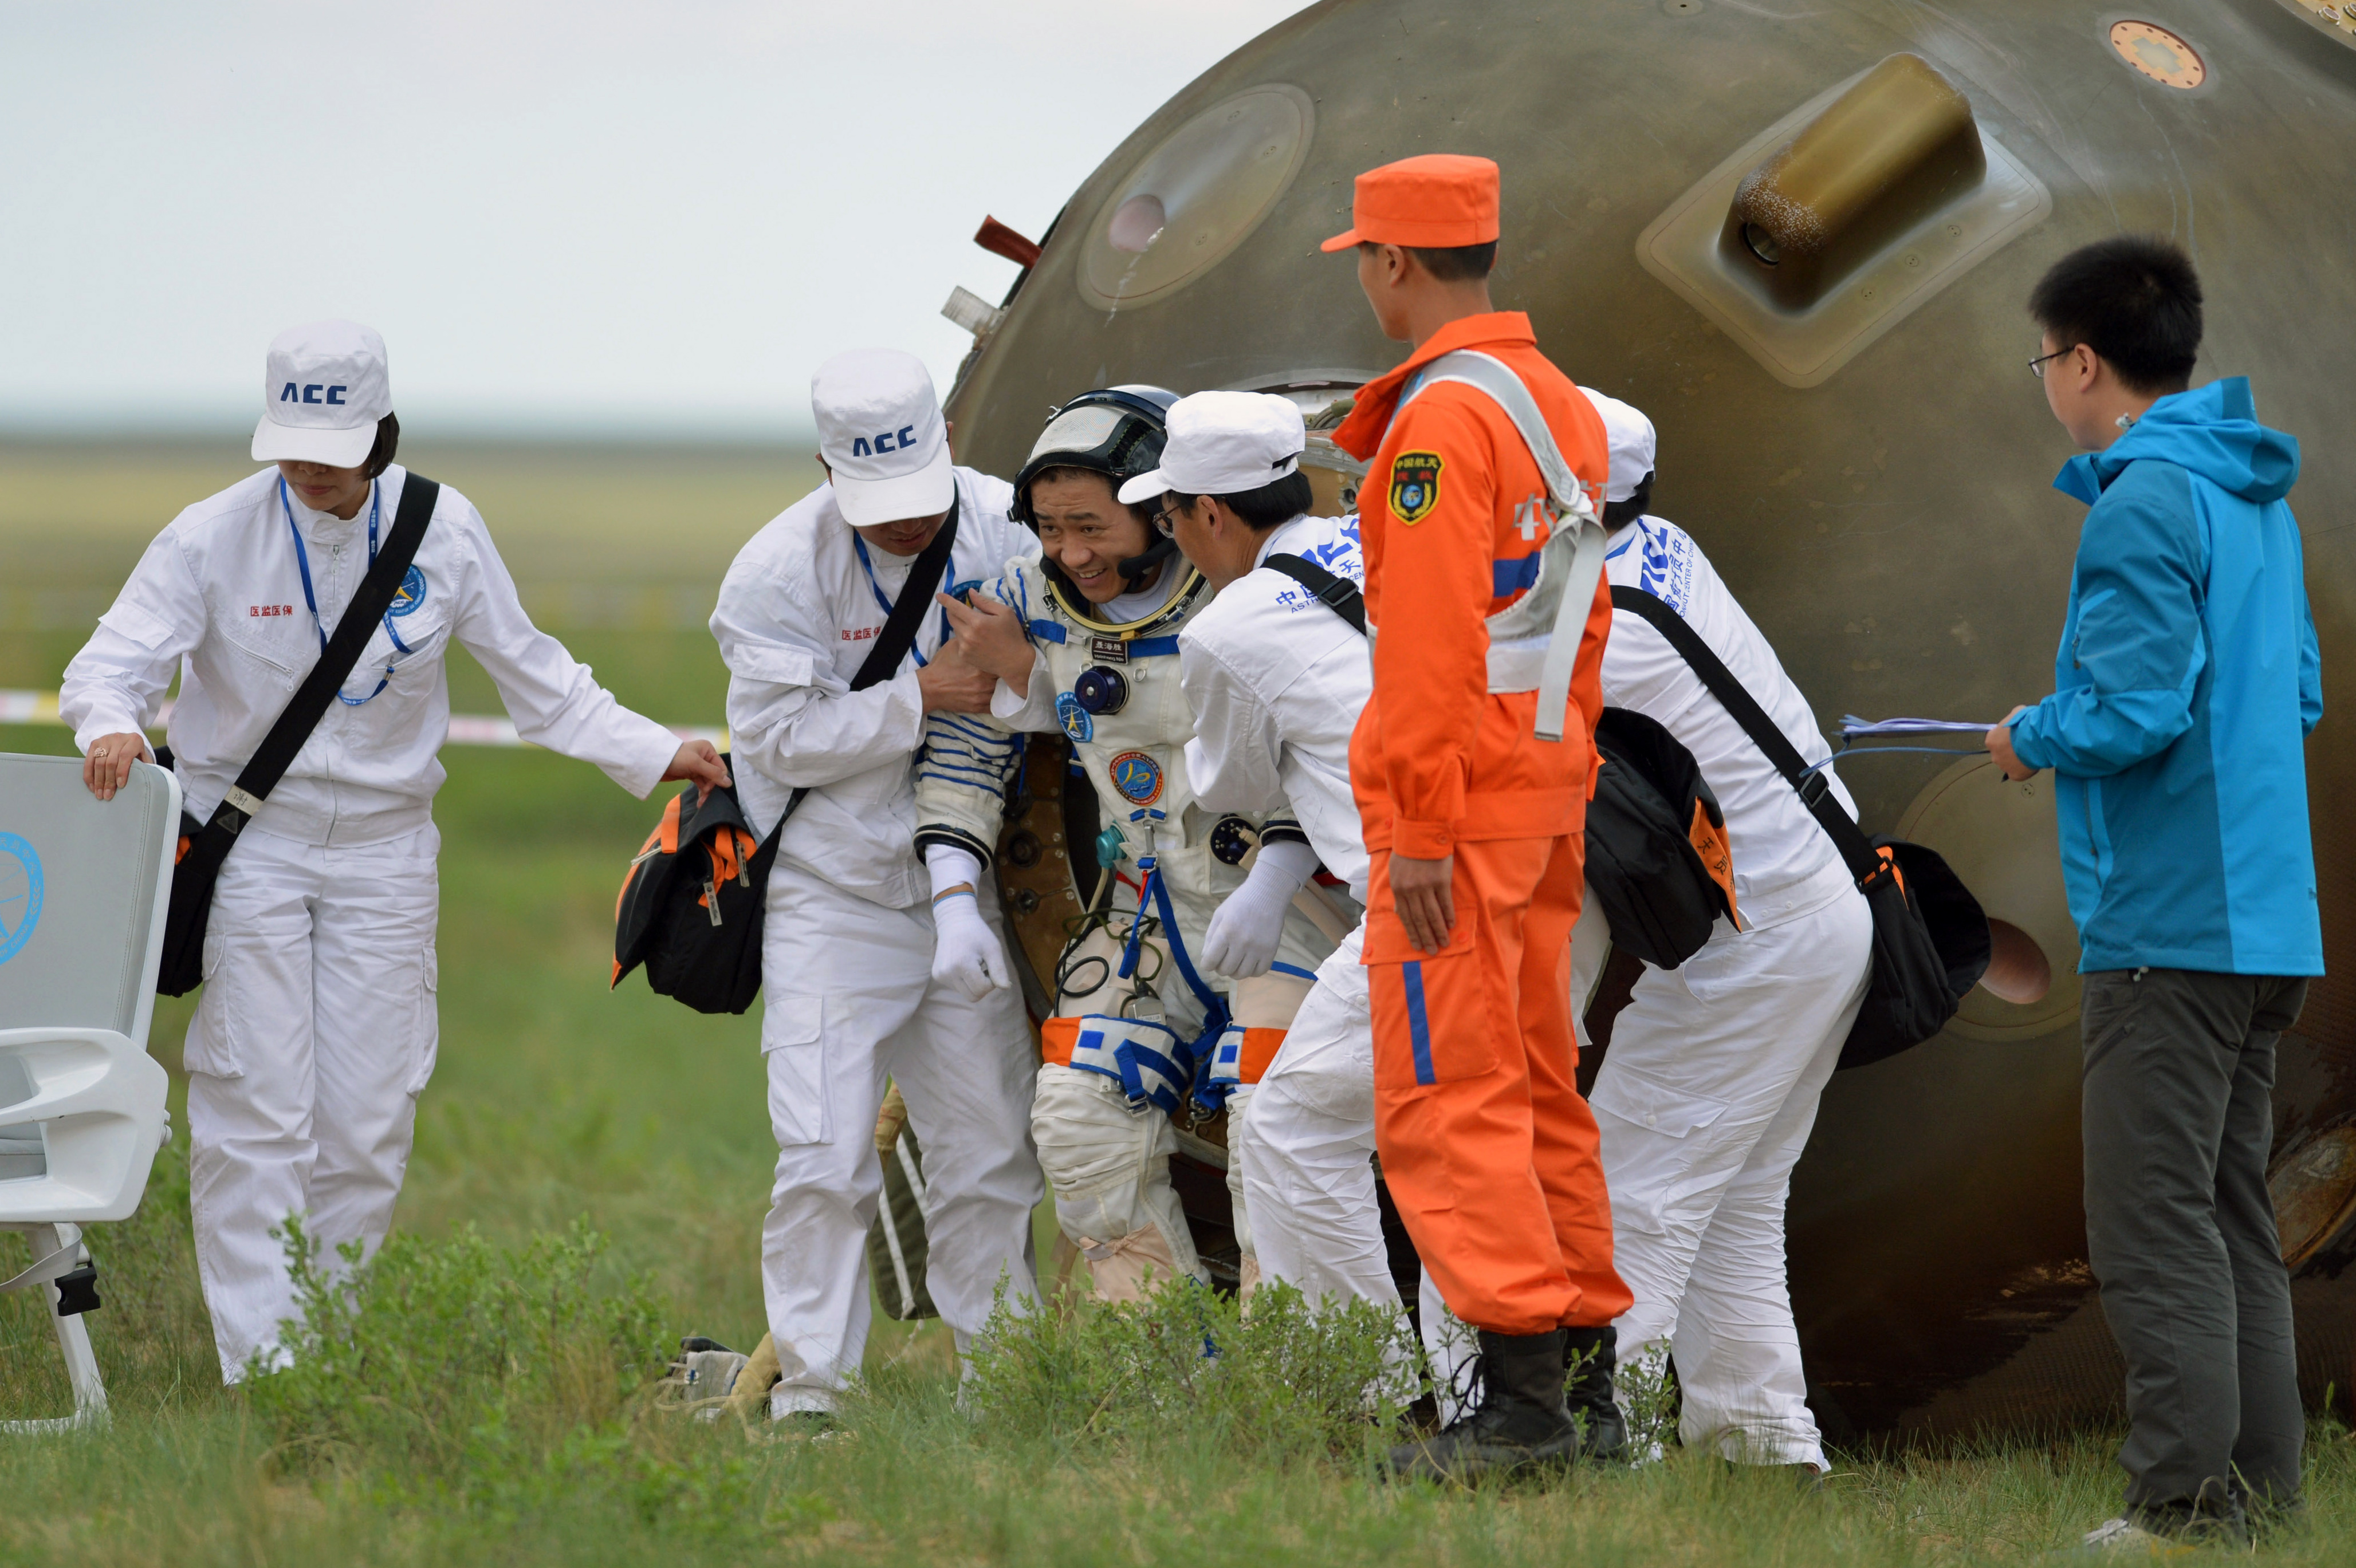 Welcome home: Nie Haisheng is helped out of his Shenzhou 10 spacecraft after a 15-day mission in 2013.